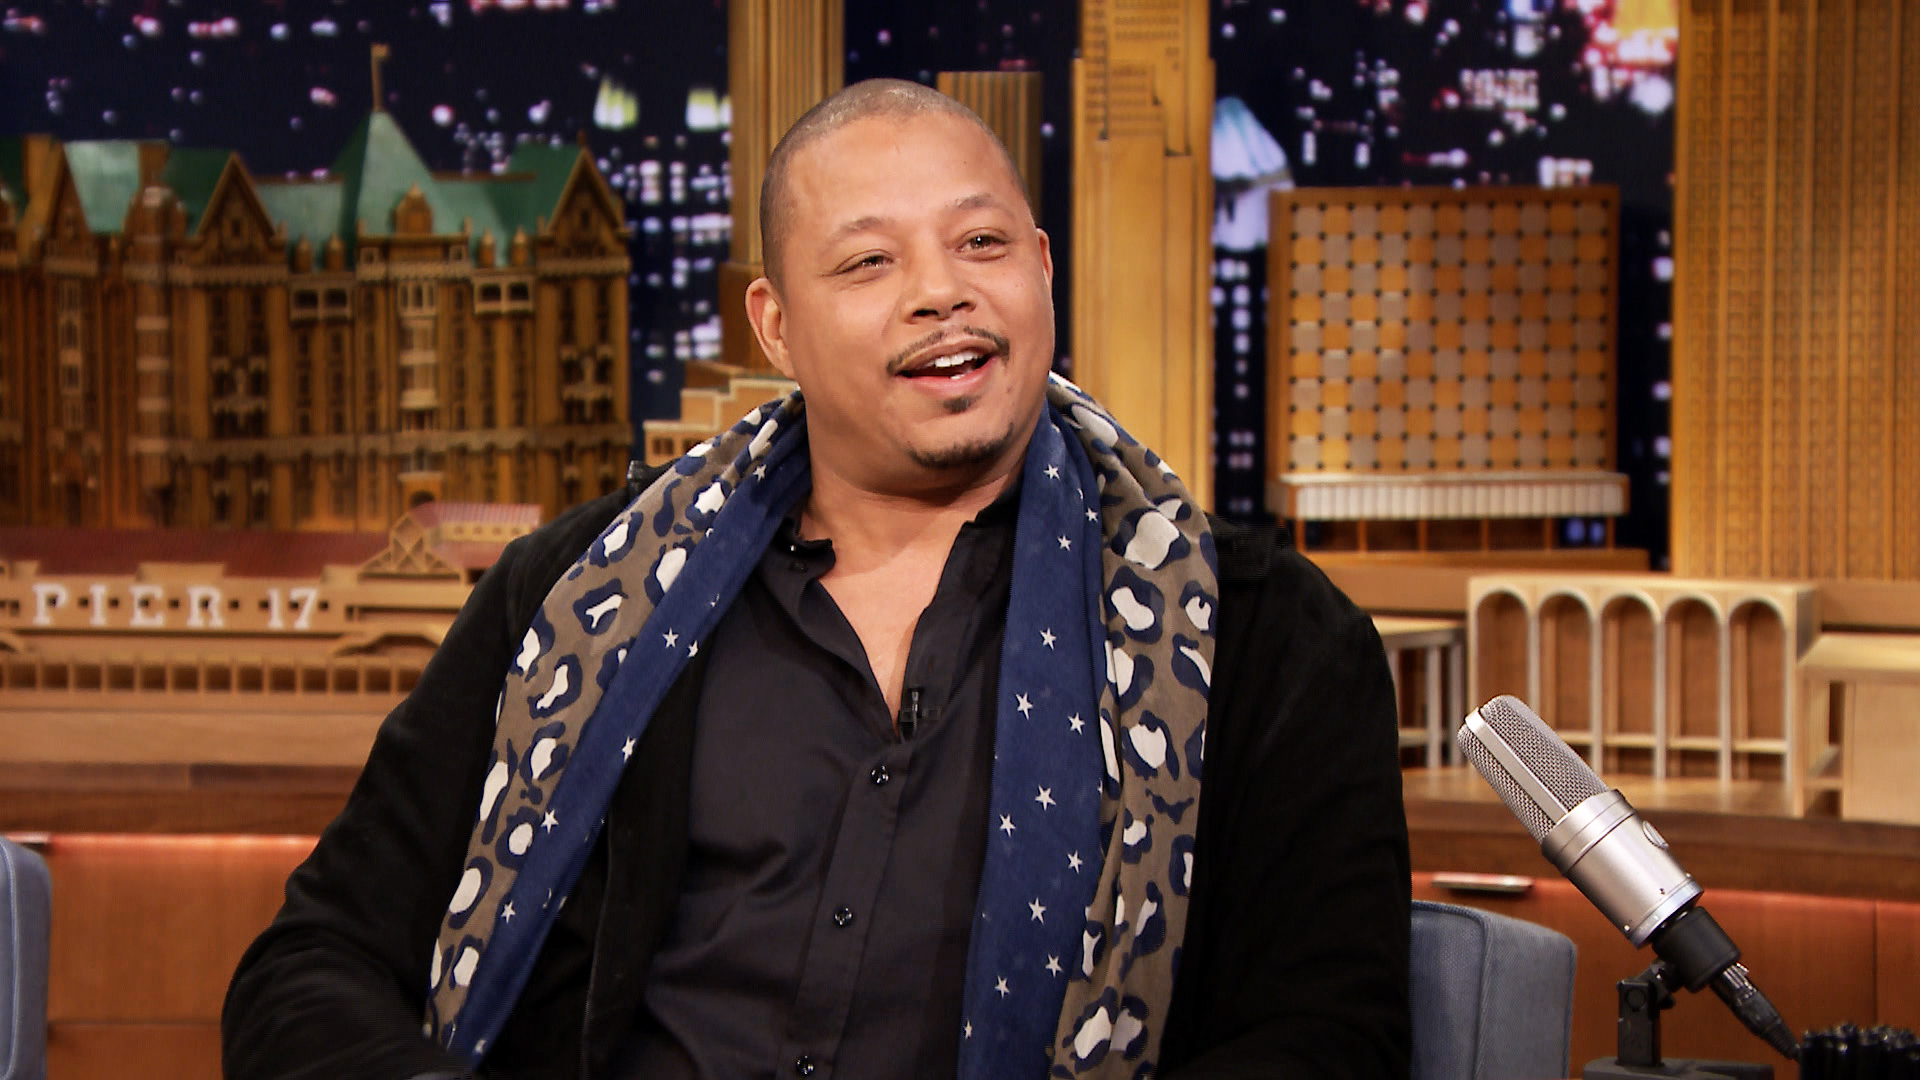 Terrence Howard Does Play His Oscars Flub